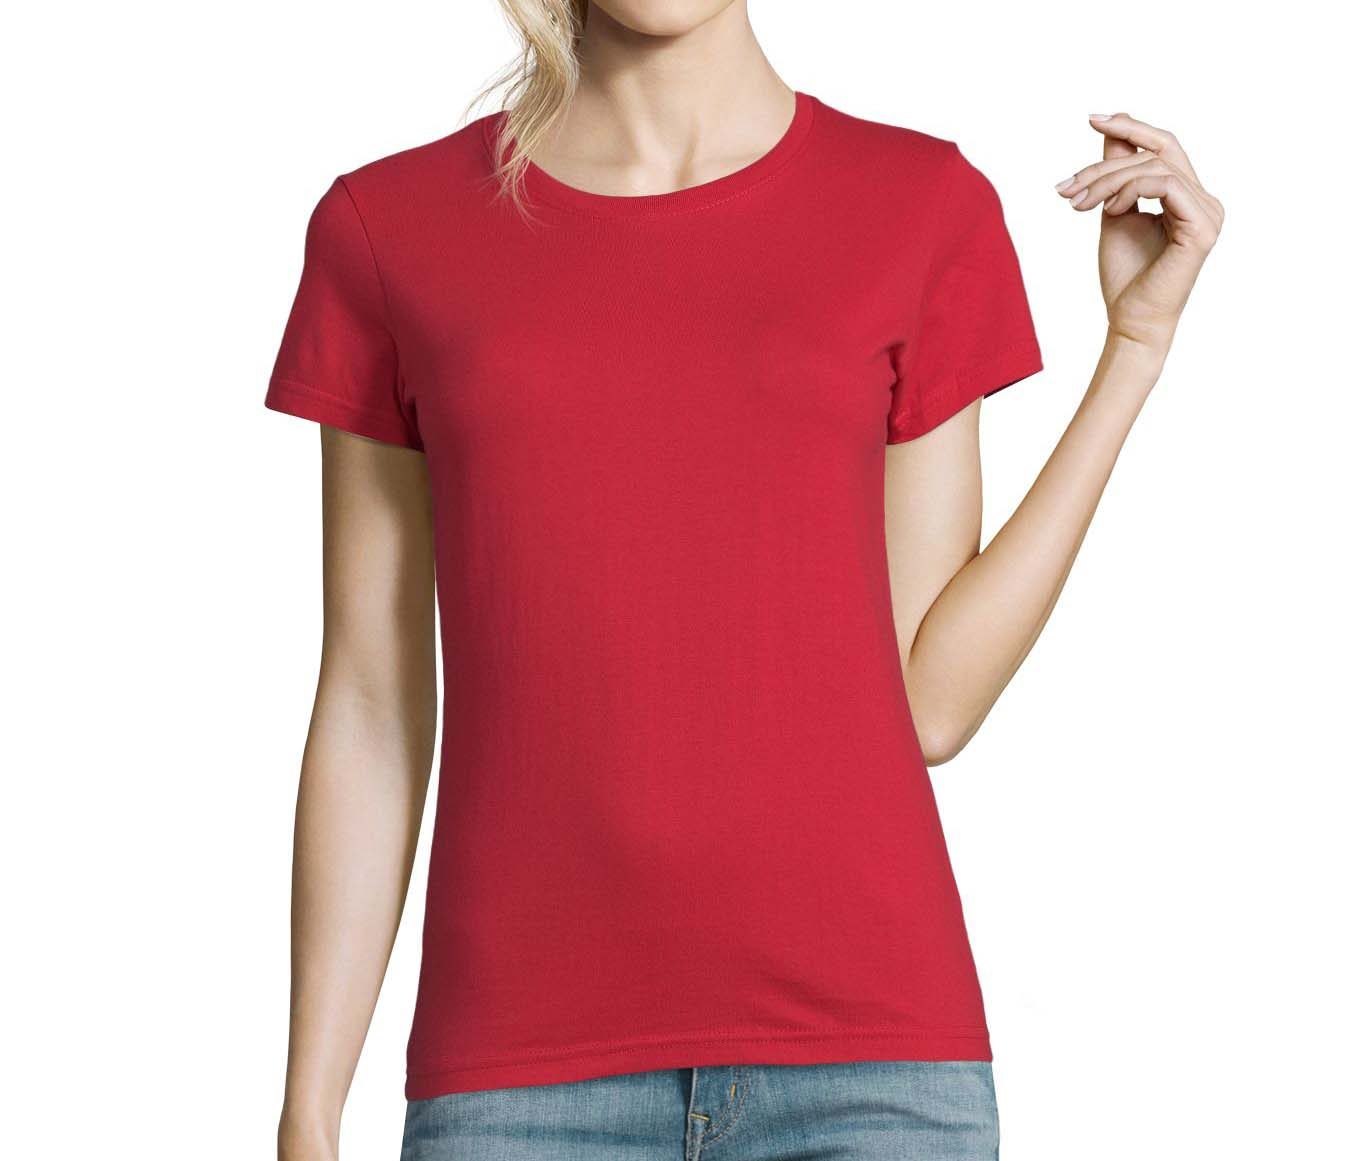 L191 - Imperial Women T-Shirt Sol´s